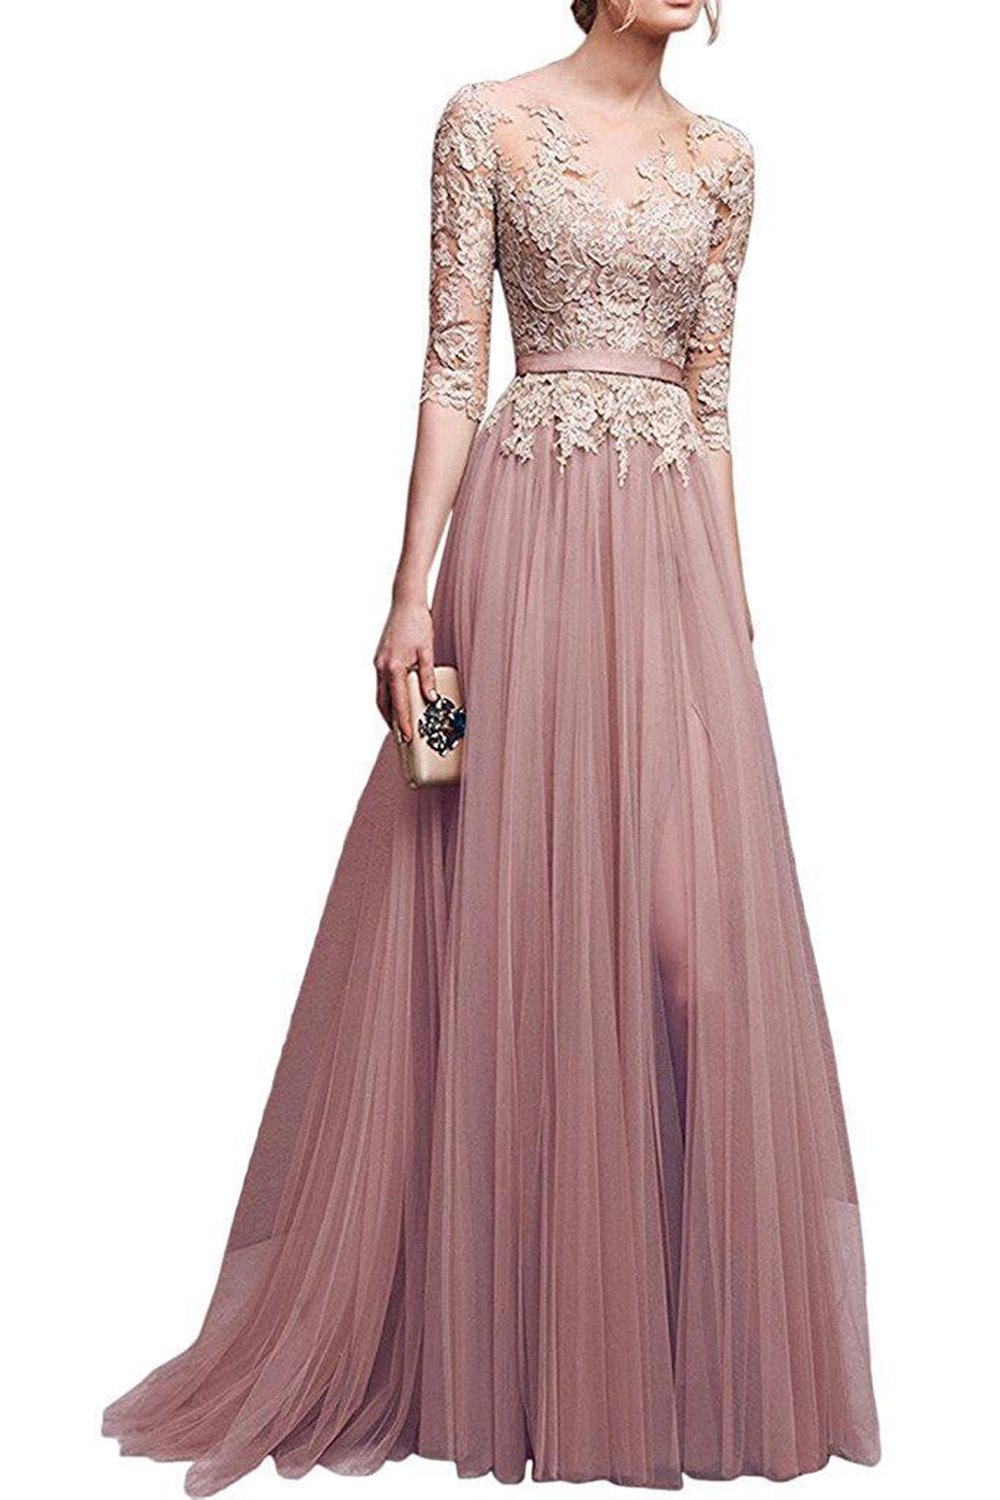 MisShow Elegant Lace Tulle Bridesmaid Dresses for Weddings Formal Evening Gowns